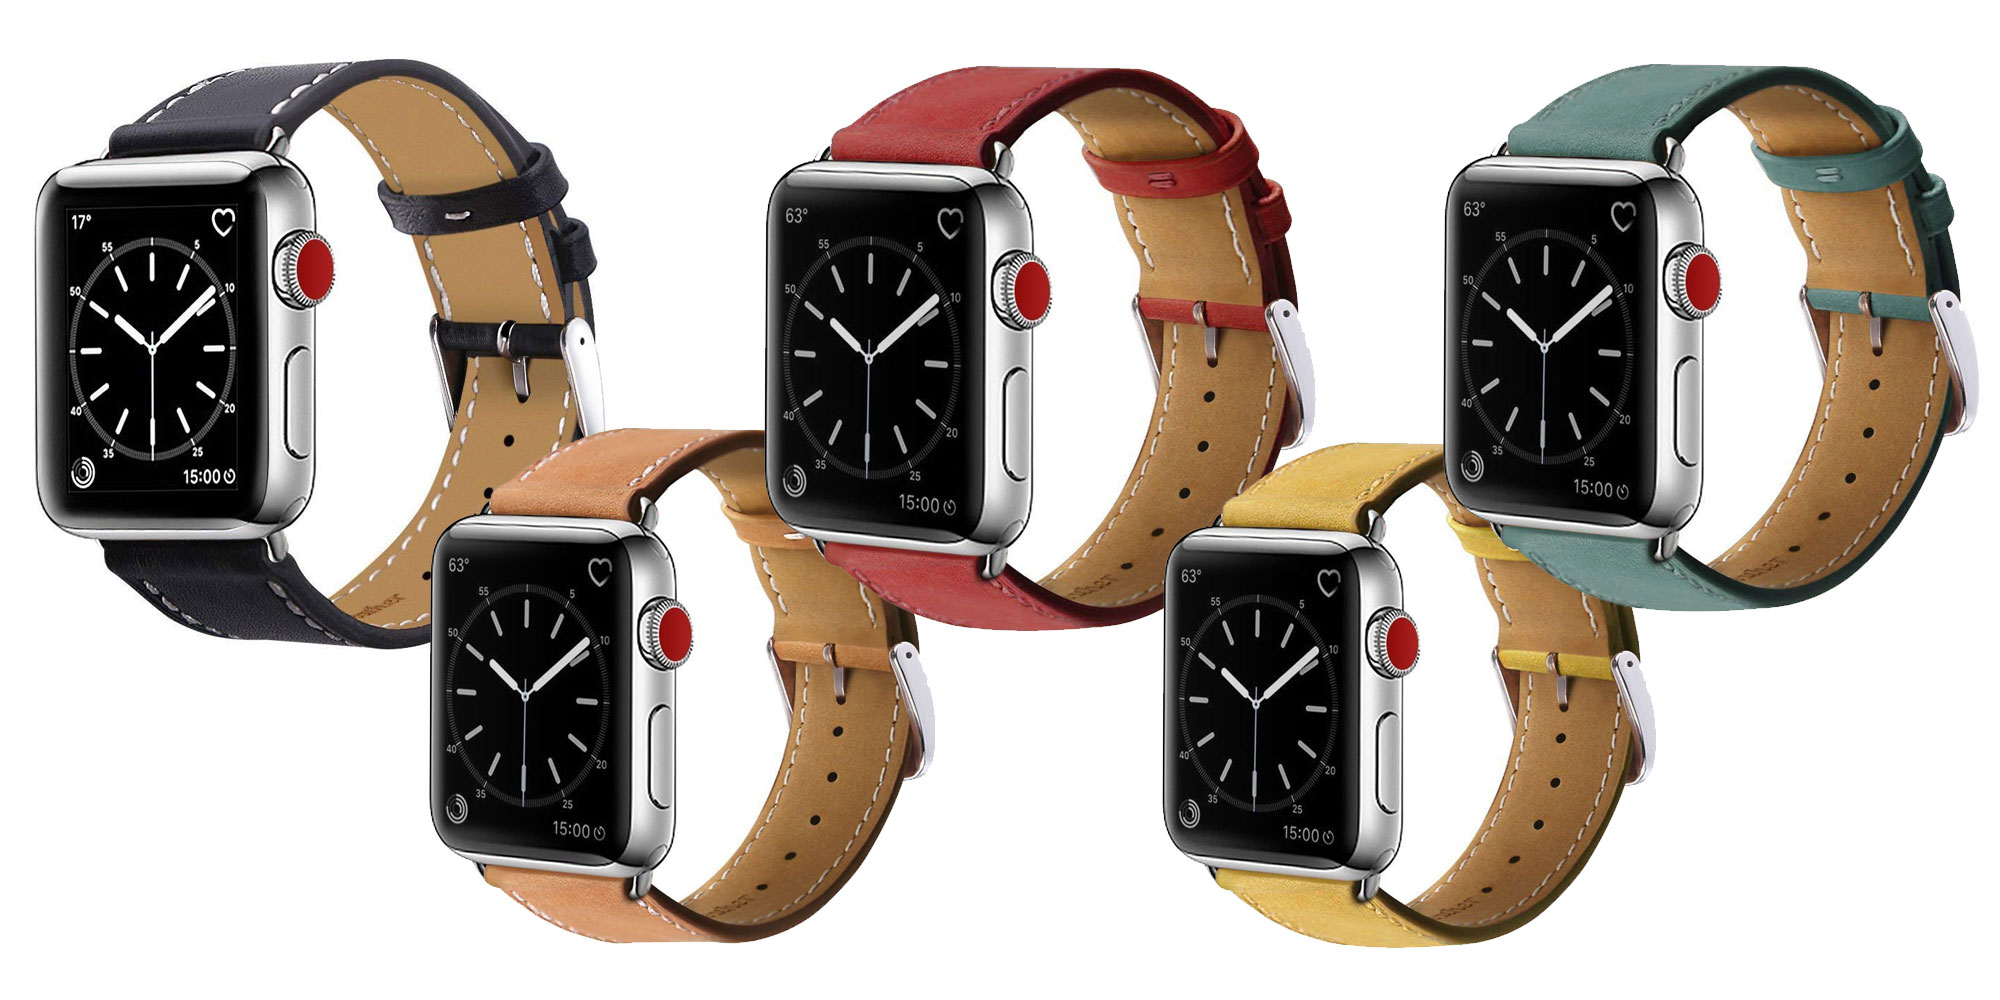 Add this $5 Prime shipped leather band to your Apple Watch collection in multiple colors